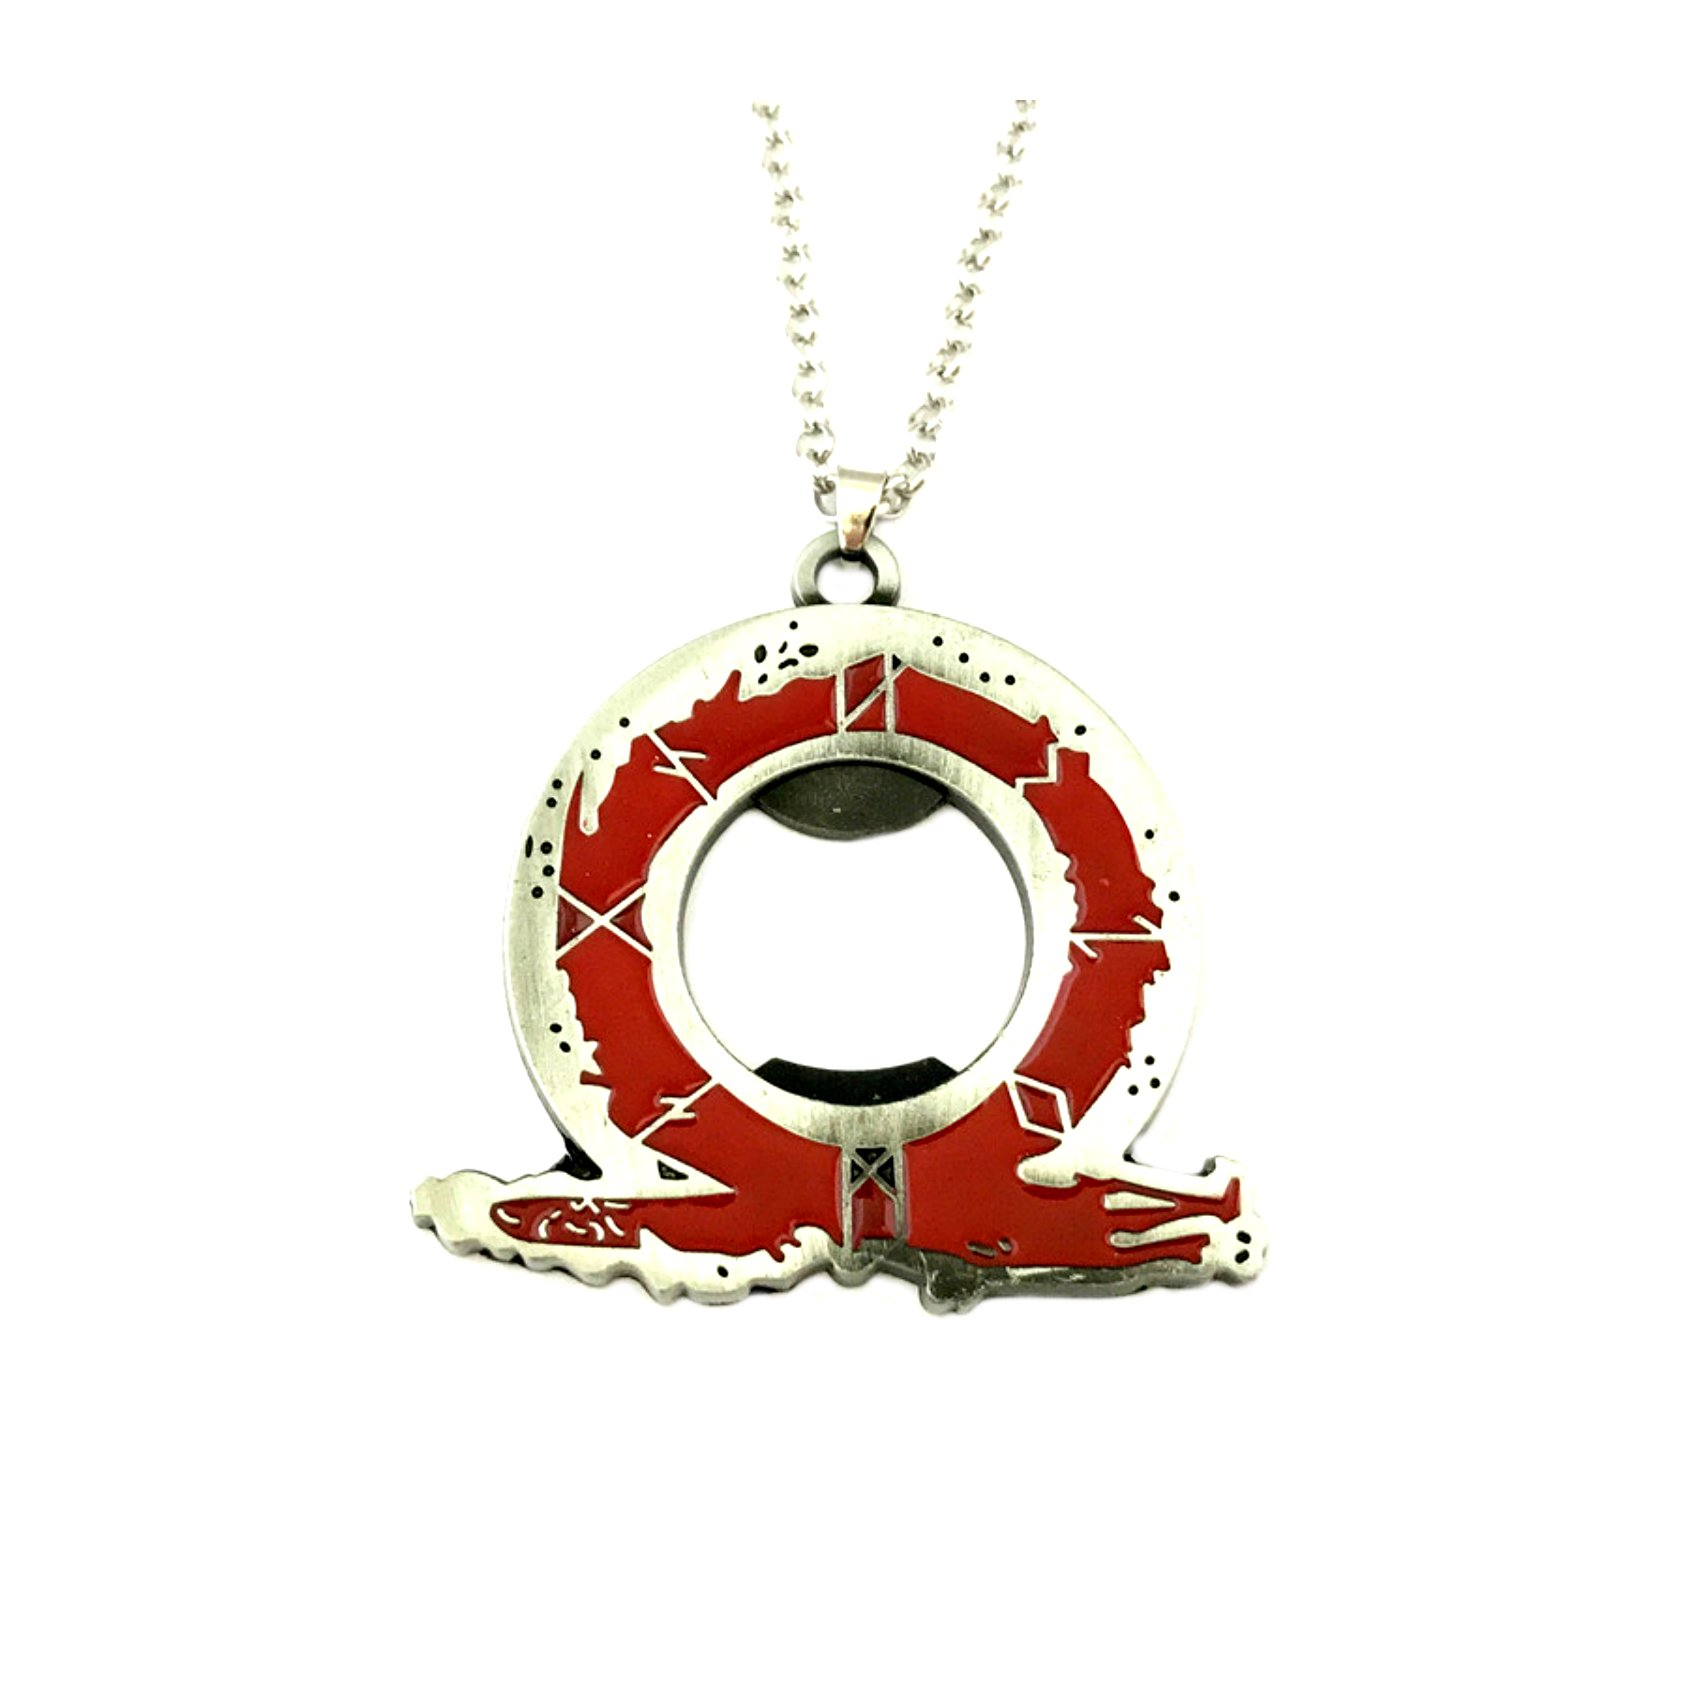 God of War Pendant Necklace TV Movies Classic Cartoons Superhero Superhero Gaming Console PC Games Logo Theme Cosplay Premium Quality Detailed Jewelry Gift Series